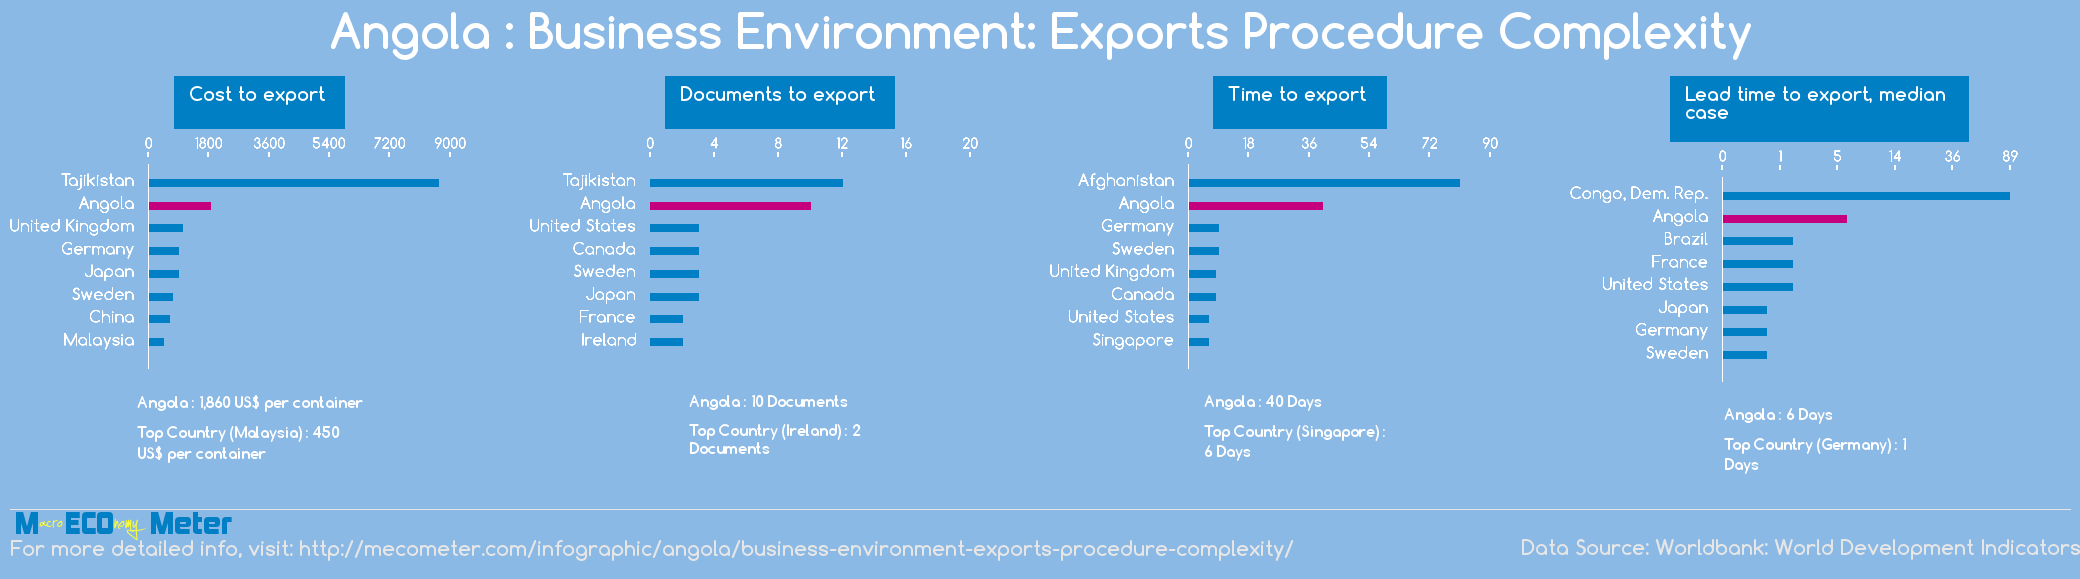 Angola : Business Environment: Exports Procedure Complexity